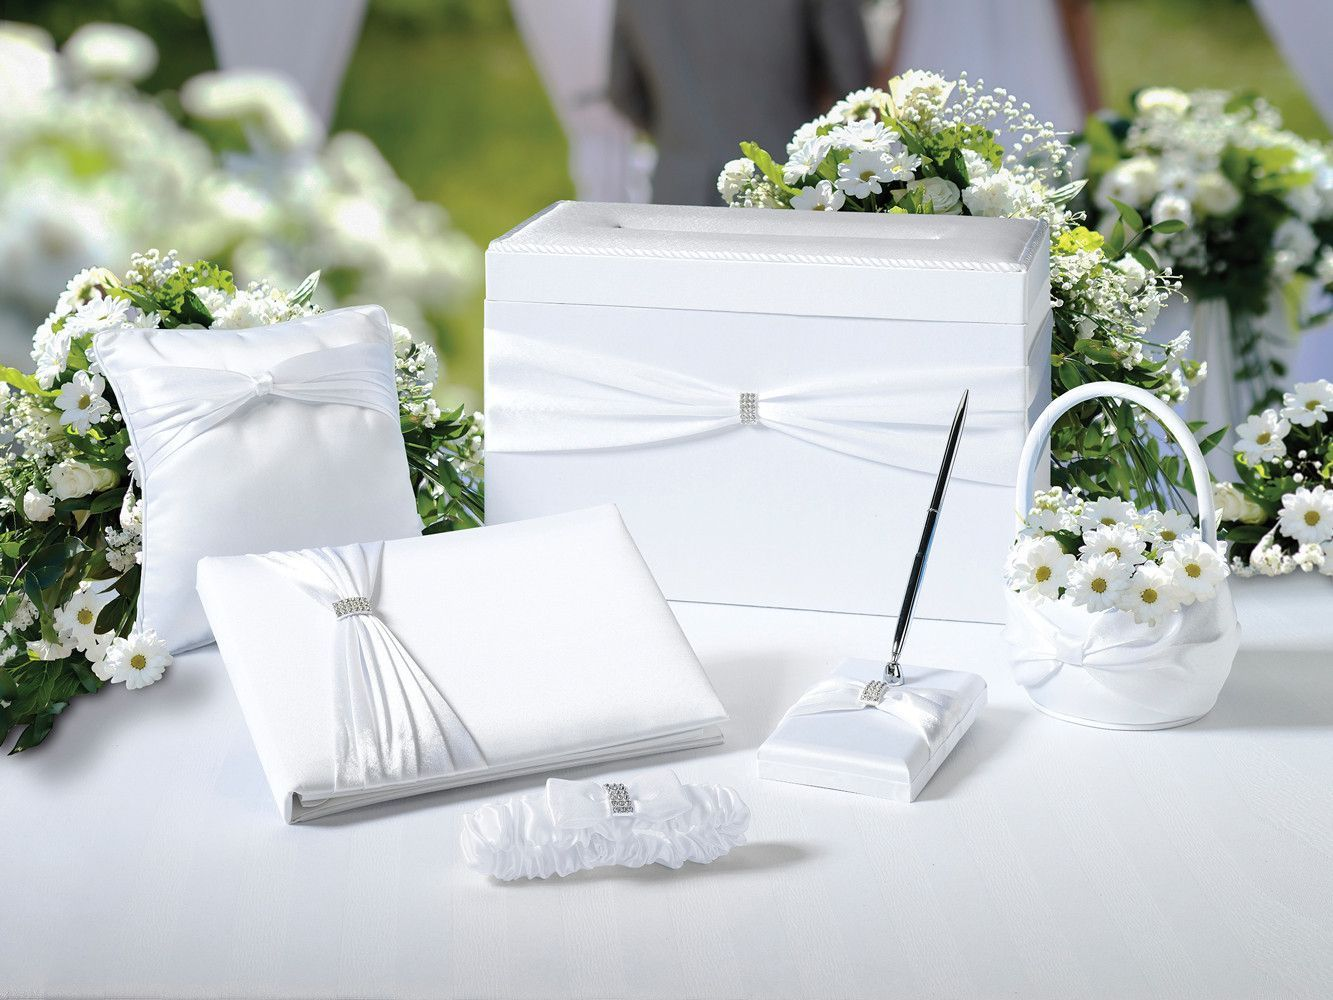 Wedding In A Box - White   White satin, Box and Products